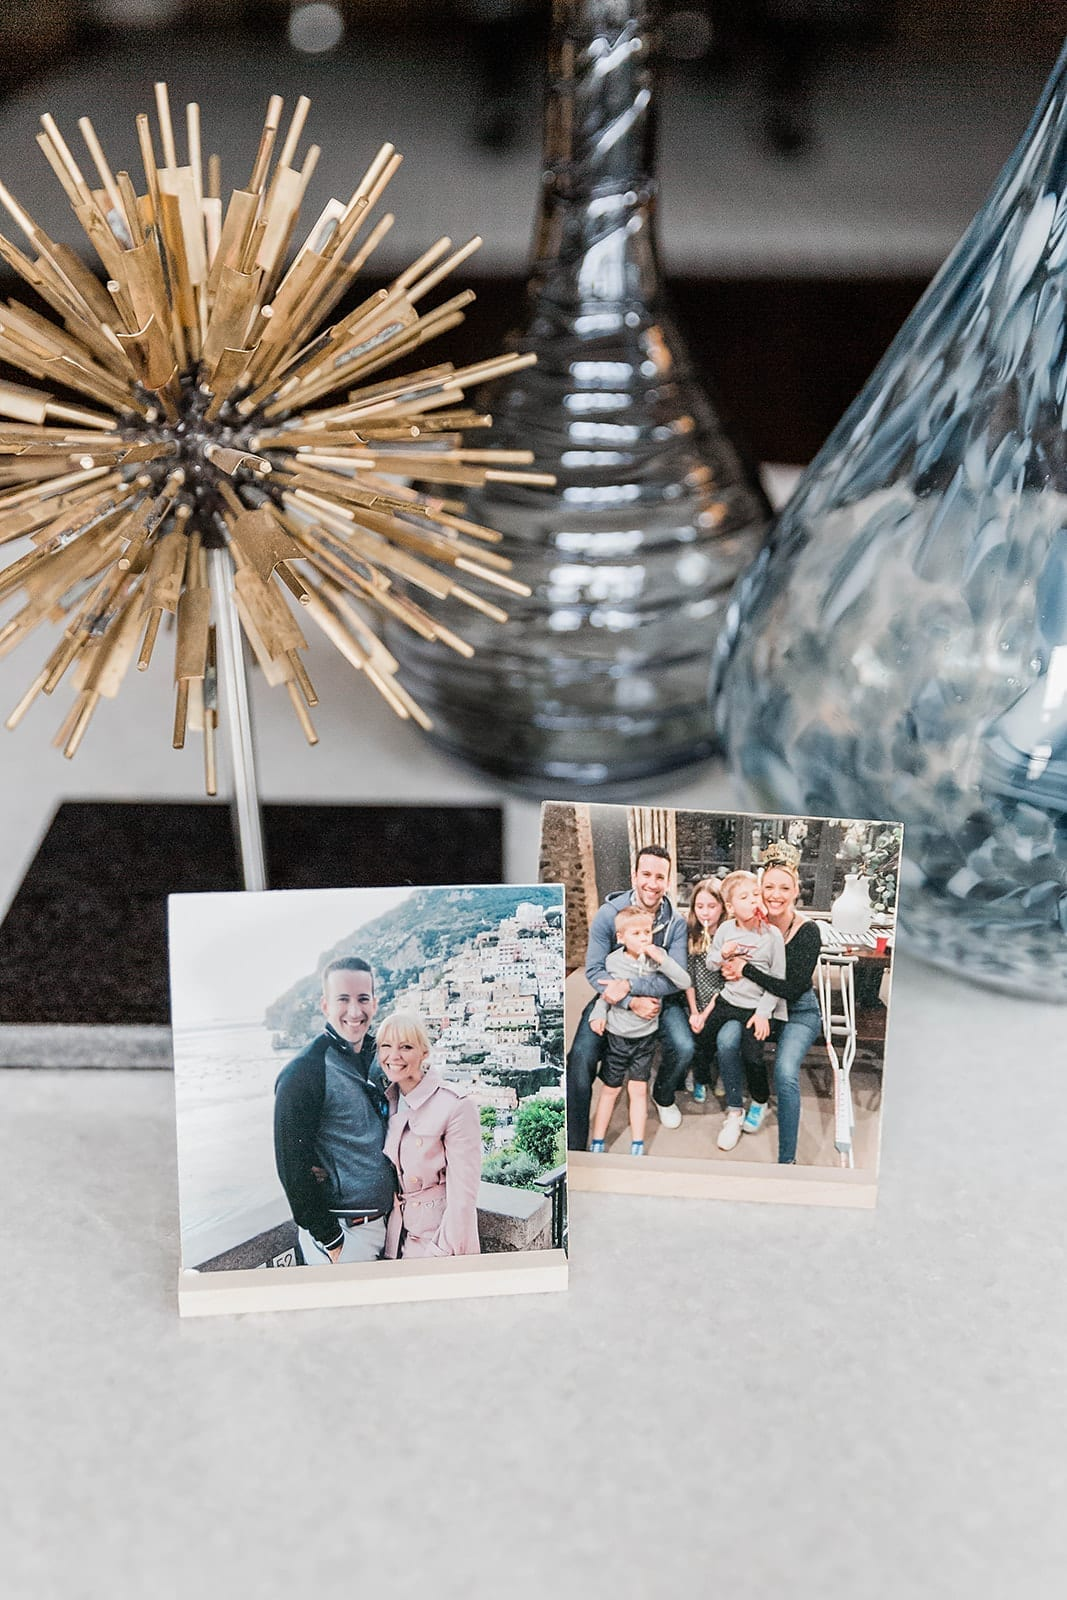 A super cute way for birthday party photo display ideas. Cover your house with photos from Kodak Moments and then send the birthday person home with the memories!